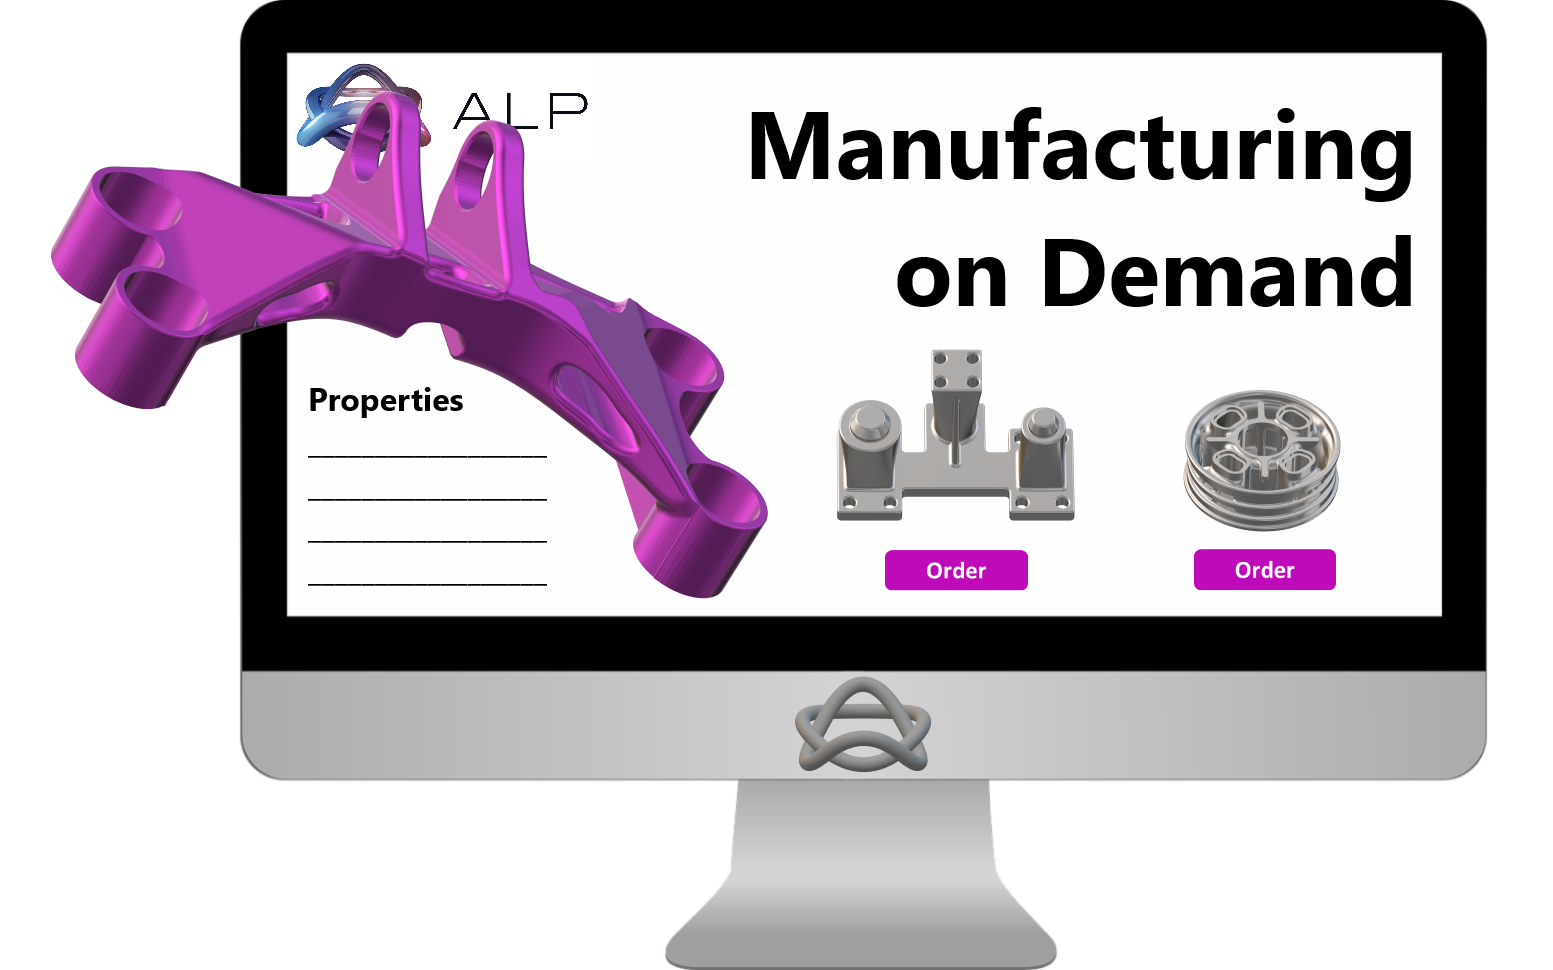 Manufacturing on Demand